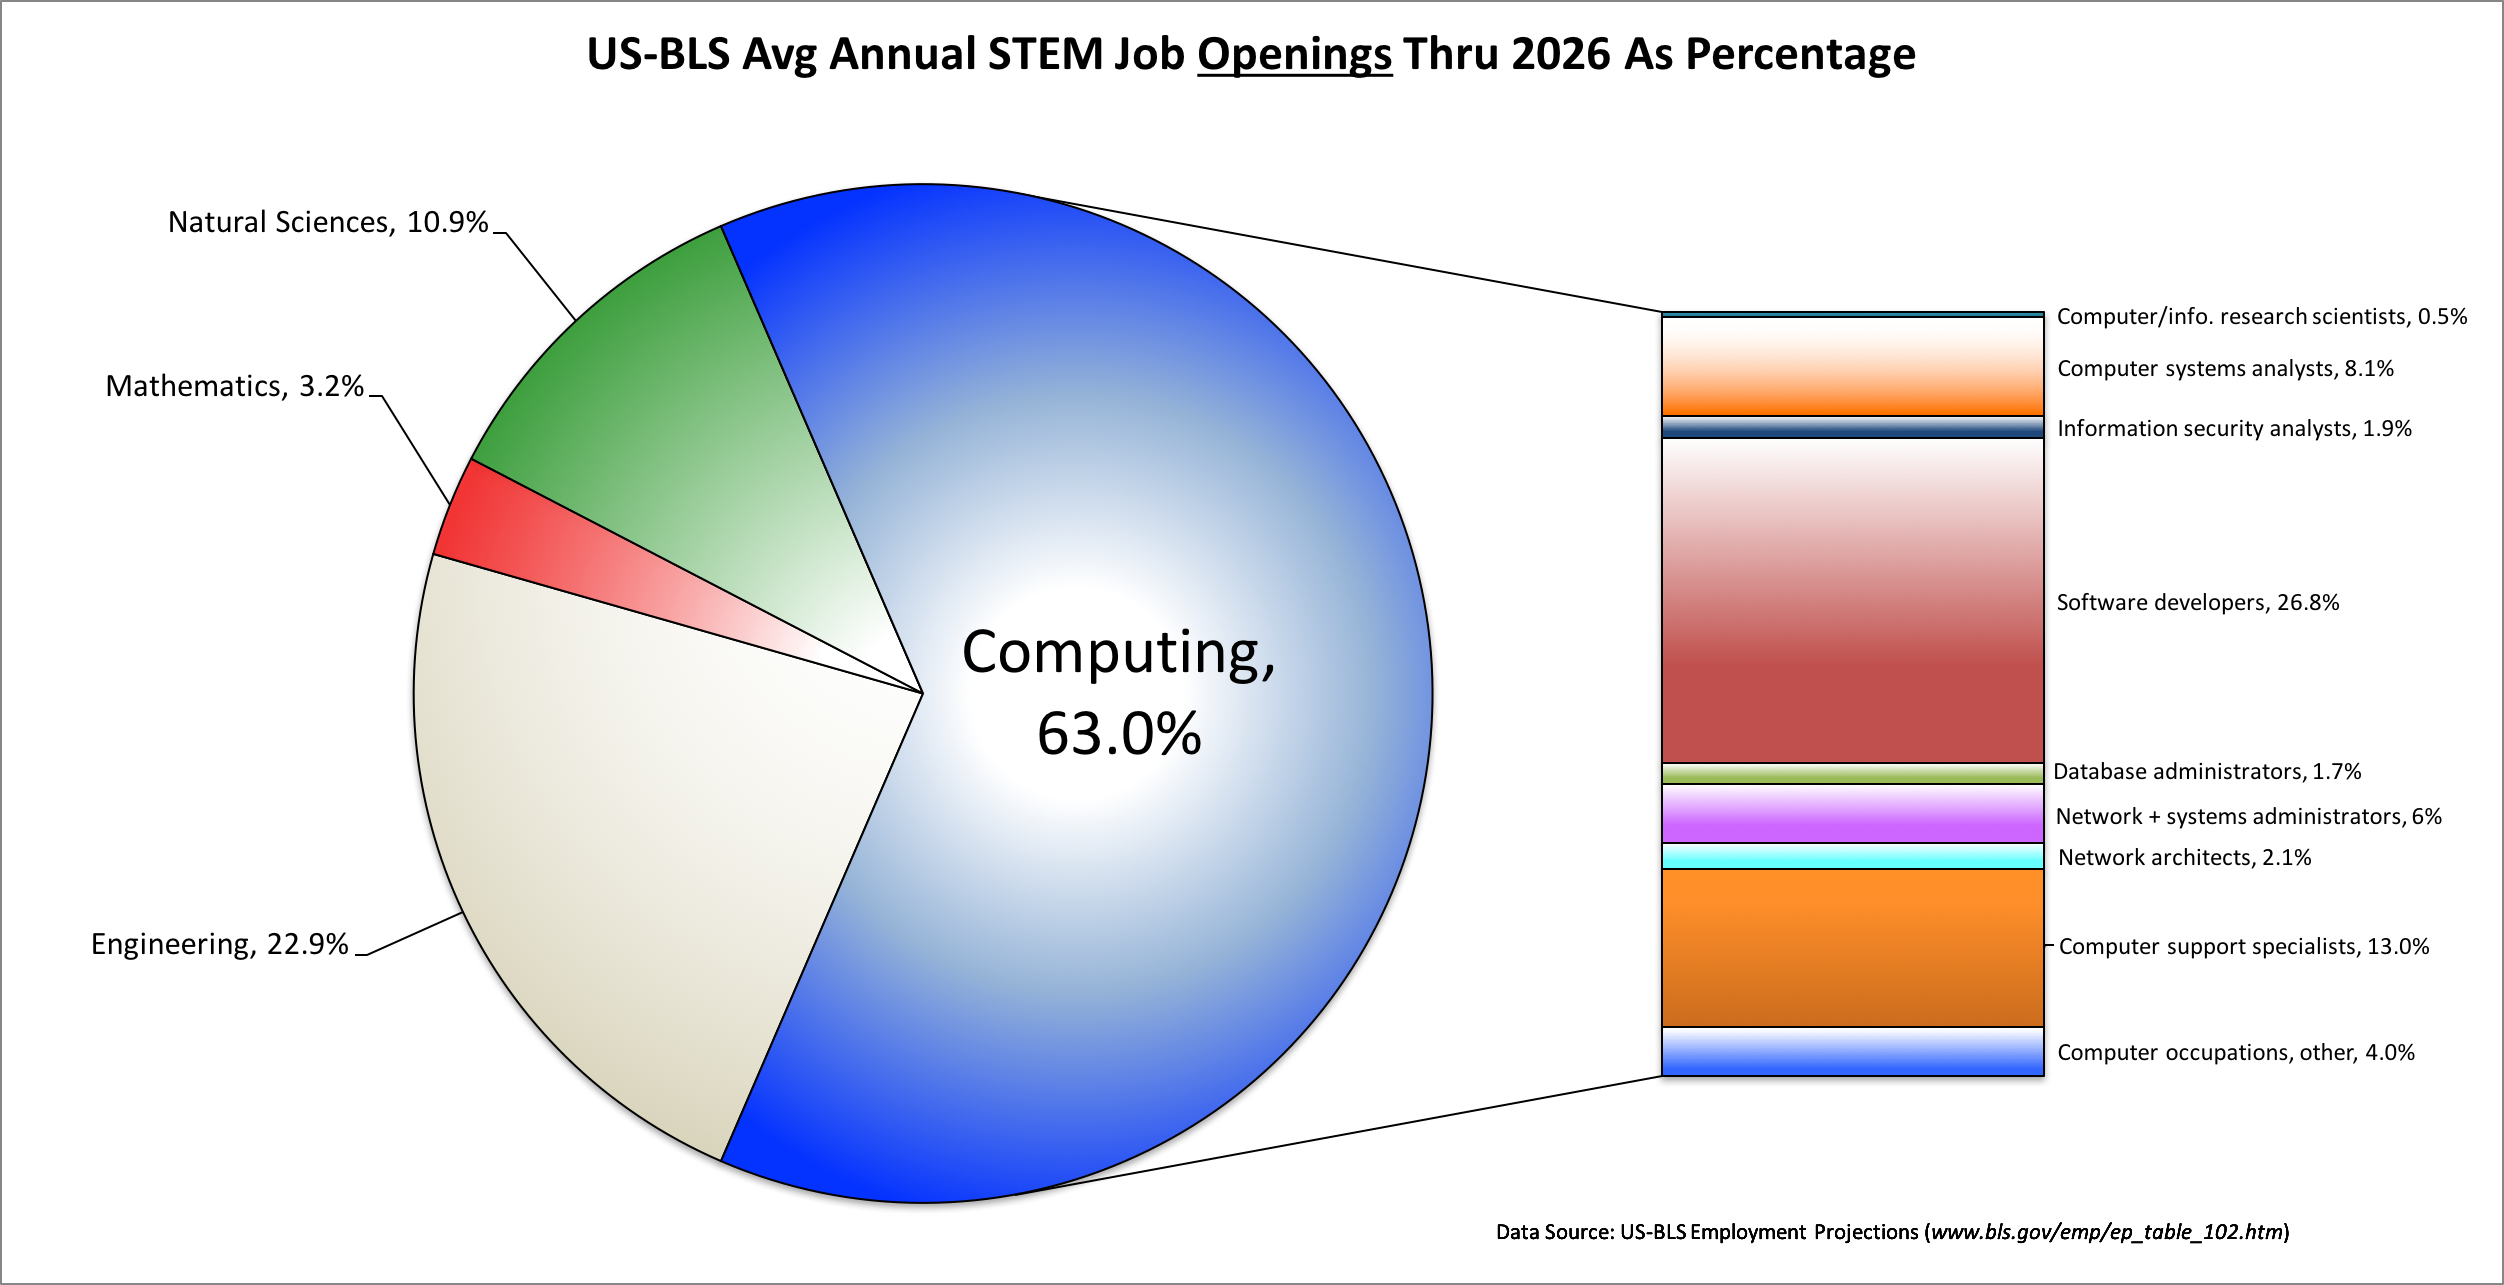 The U.S. Bureau of Labor predicts that between now and 2026,               58% of all STEM jobs will be computing jobs